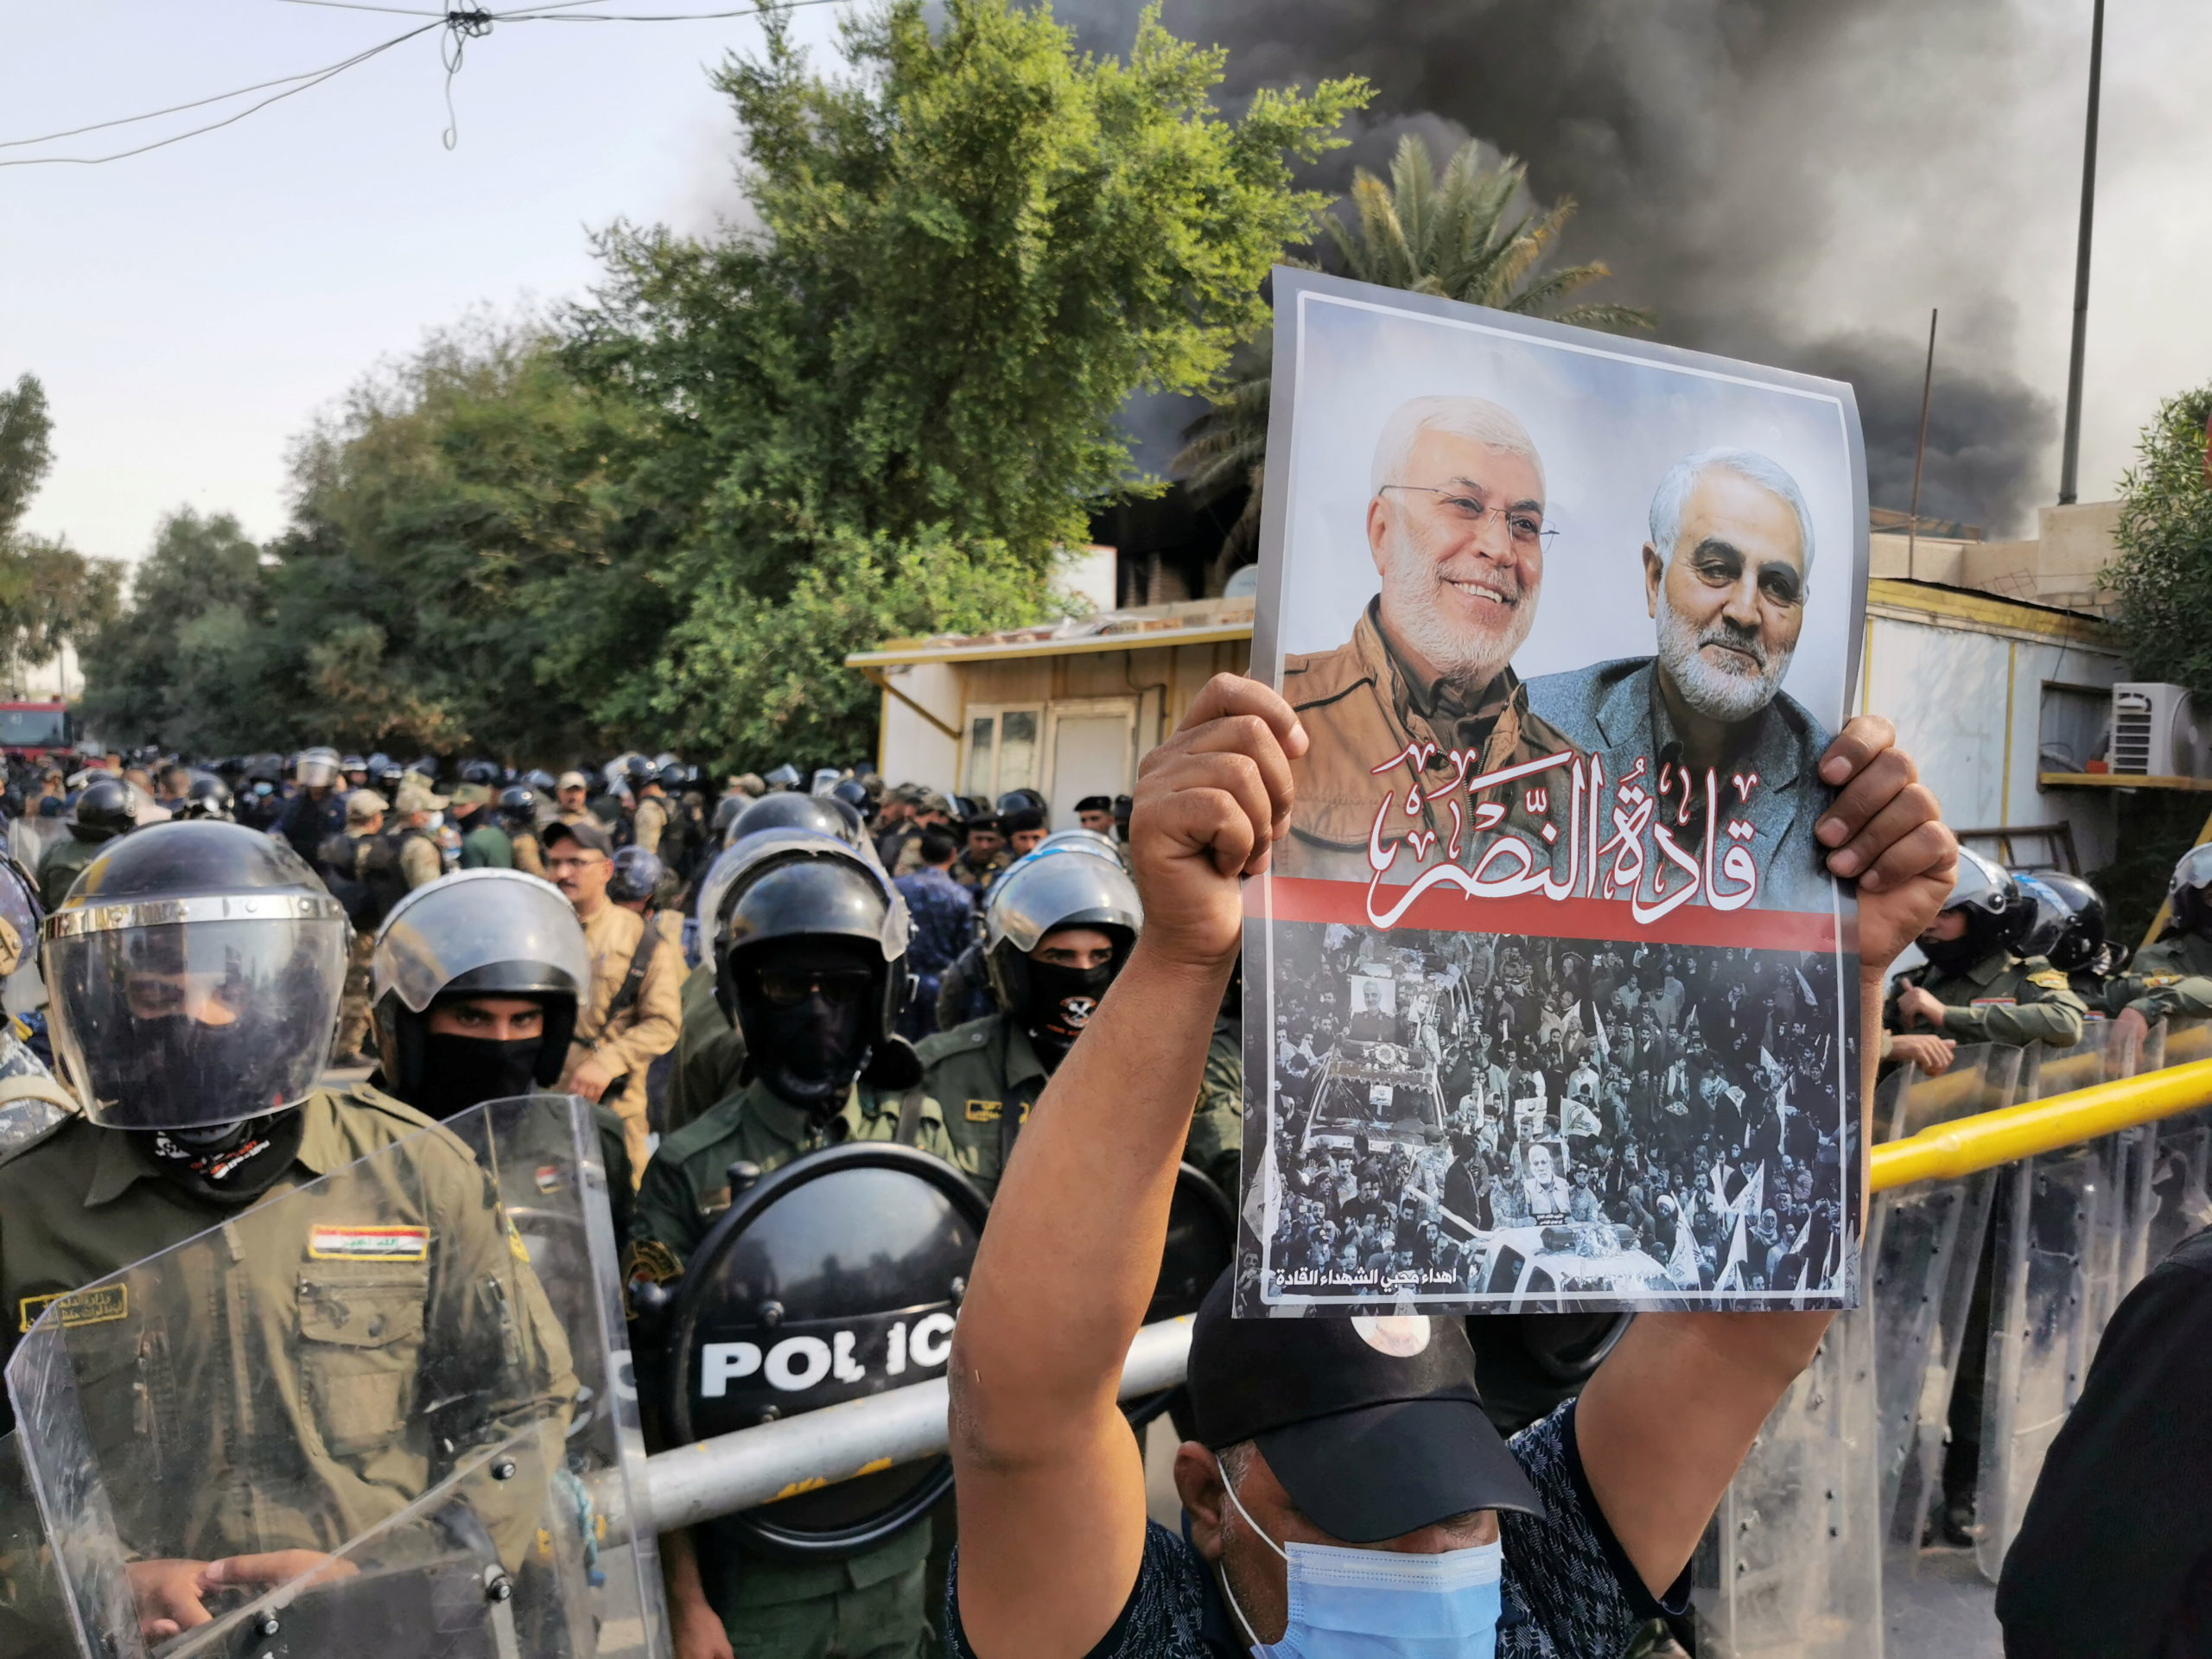 A supporter of Hashid Shaabi (Popular Mobilization Forces) holds a picture of late Iran's Quds Force top commander Qassem Soleimani and Iraqi militia commander Abu Mahdi al-Muhandis who were killed in a U.S. airstrike during a protest in Baghdad, Iraq October 17, 2020. REUTERS/ Thaier Al-Sudani